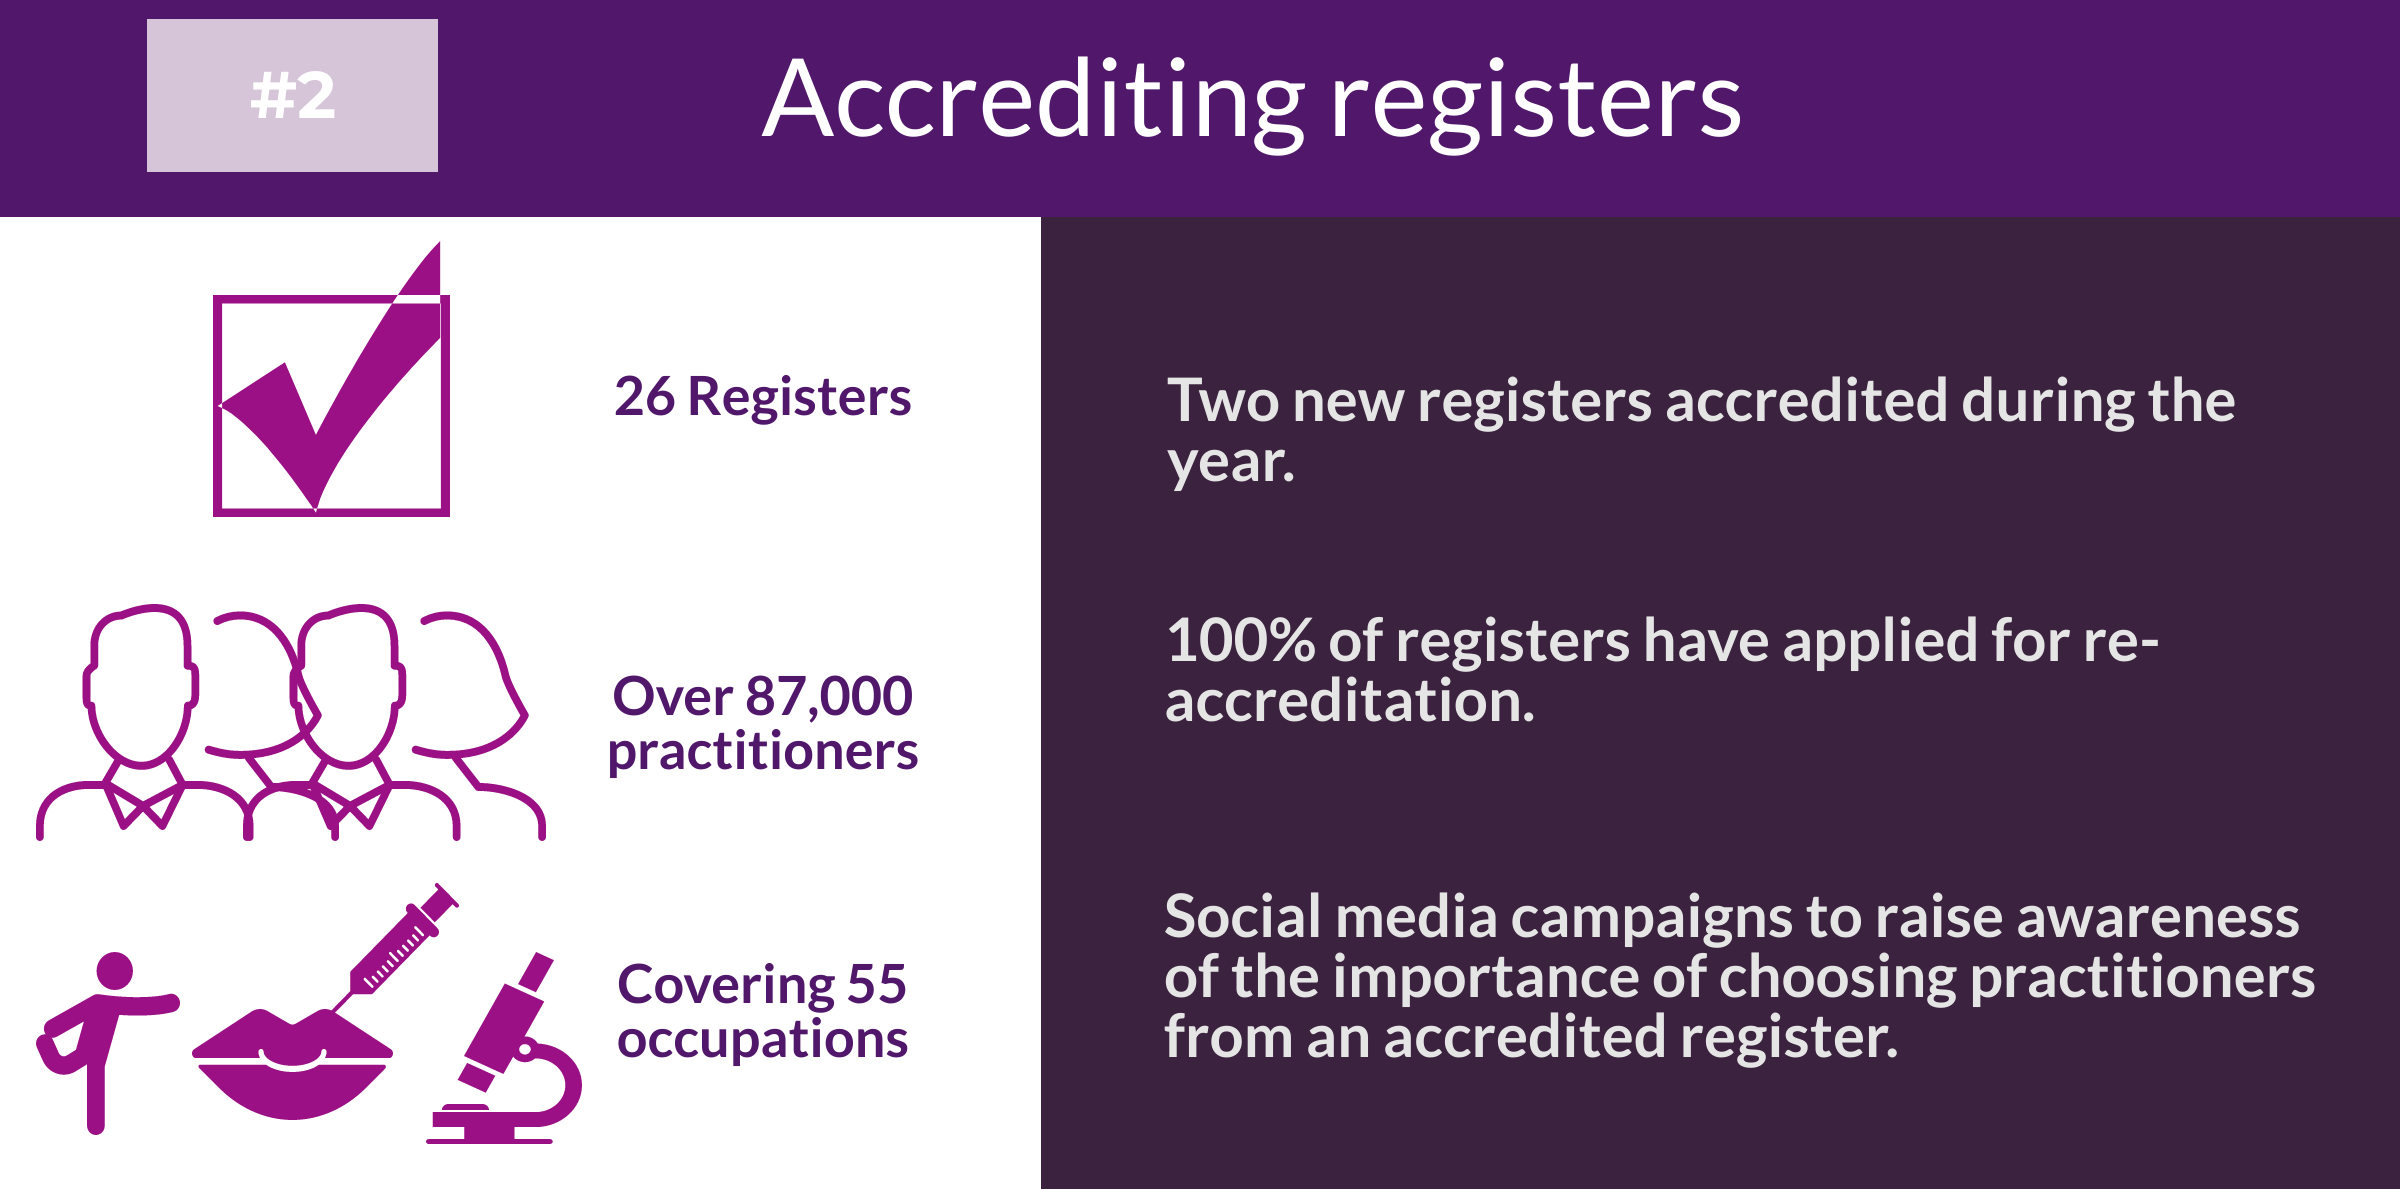 Annual report highlights - accrediting registers